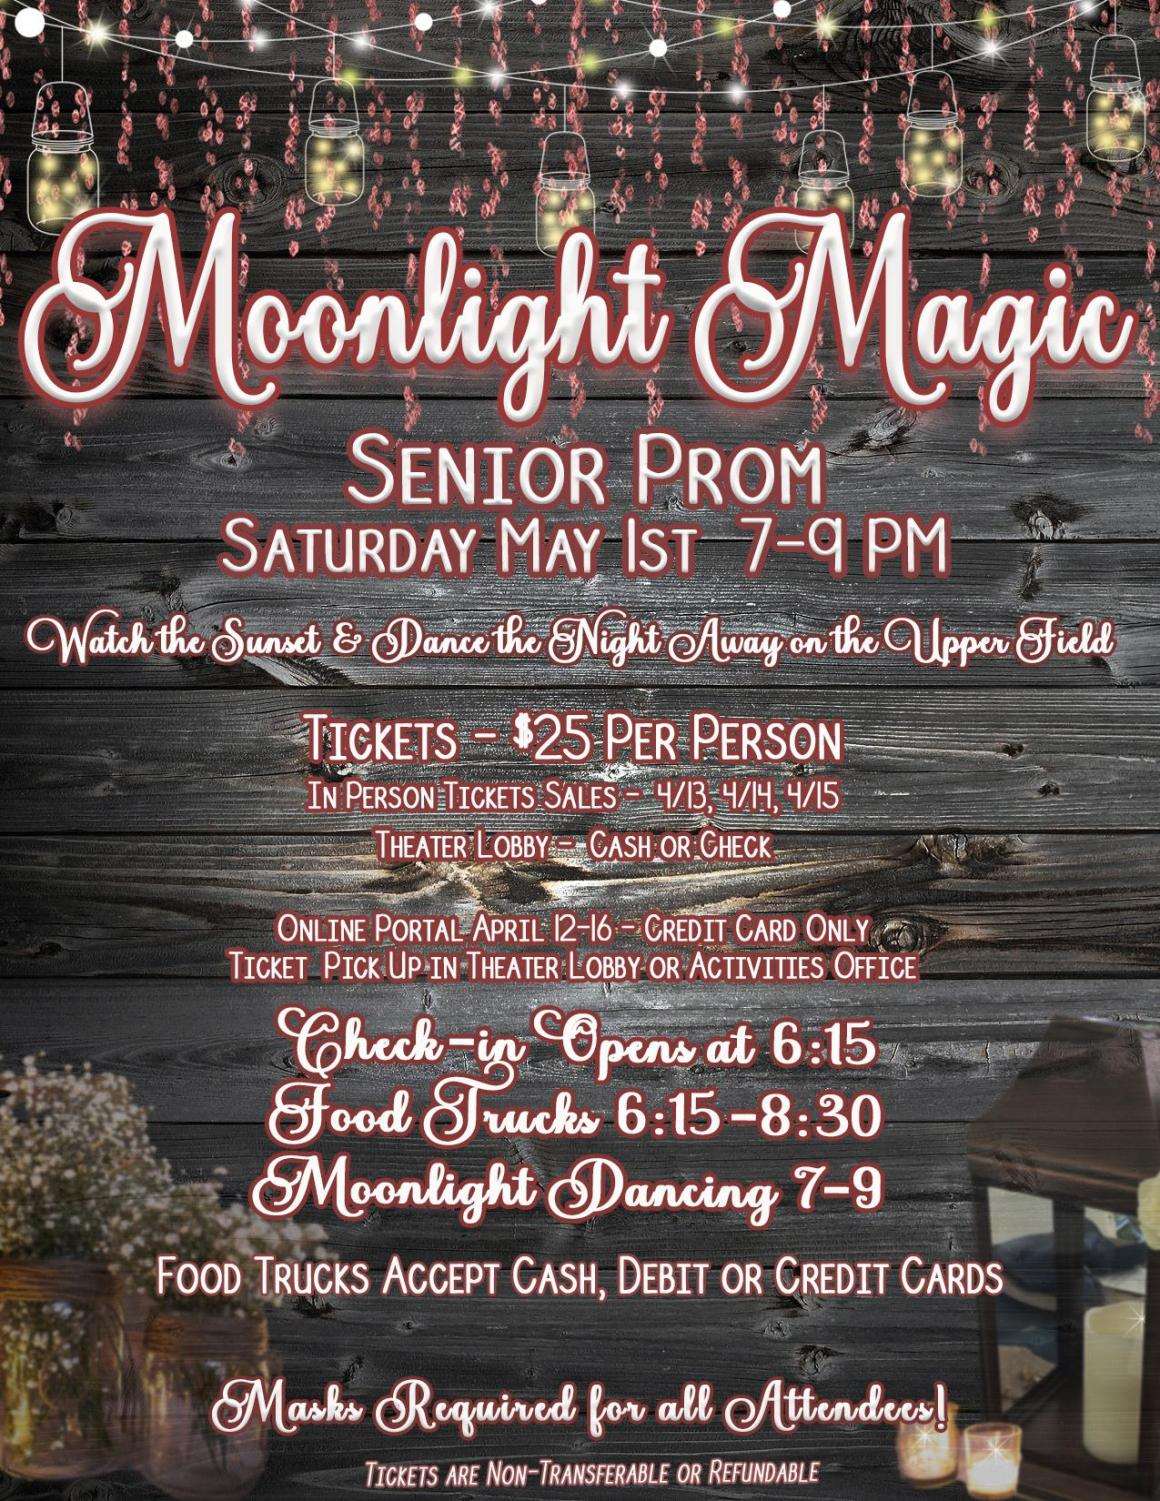 Tickets to the MHS Prom cost $25 per person and are available to purchase online from Friday, April 16, to Friday, April 23, by credit card payment only. To pay with cash or check, students should visit the Activities Office next week.